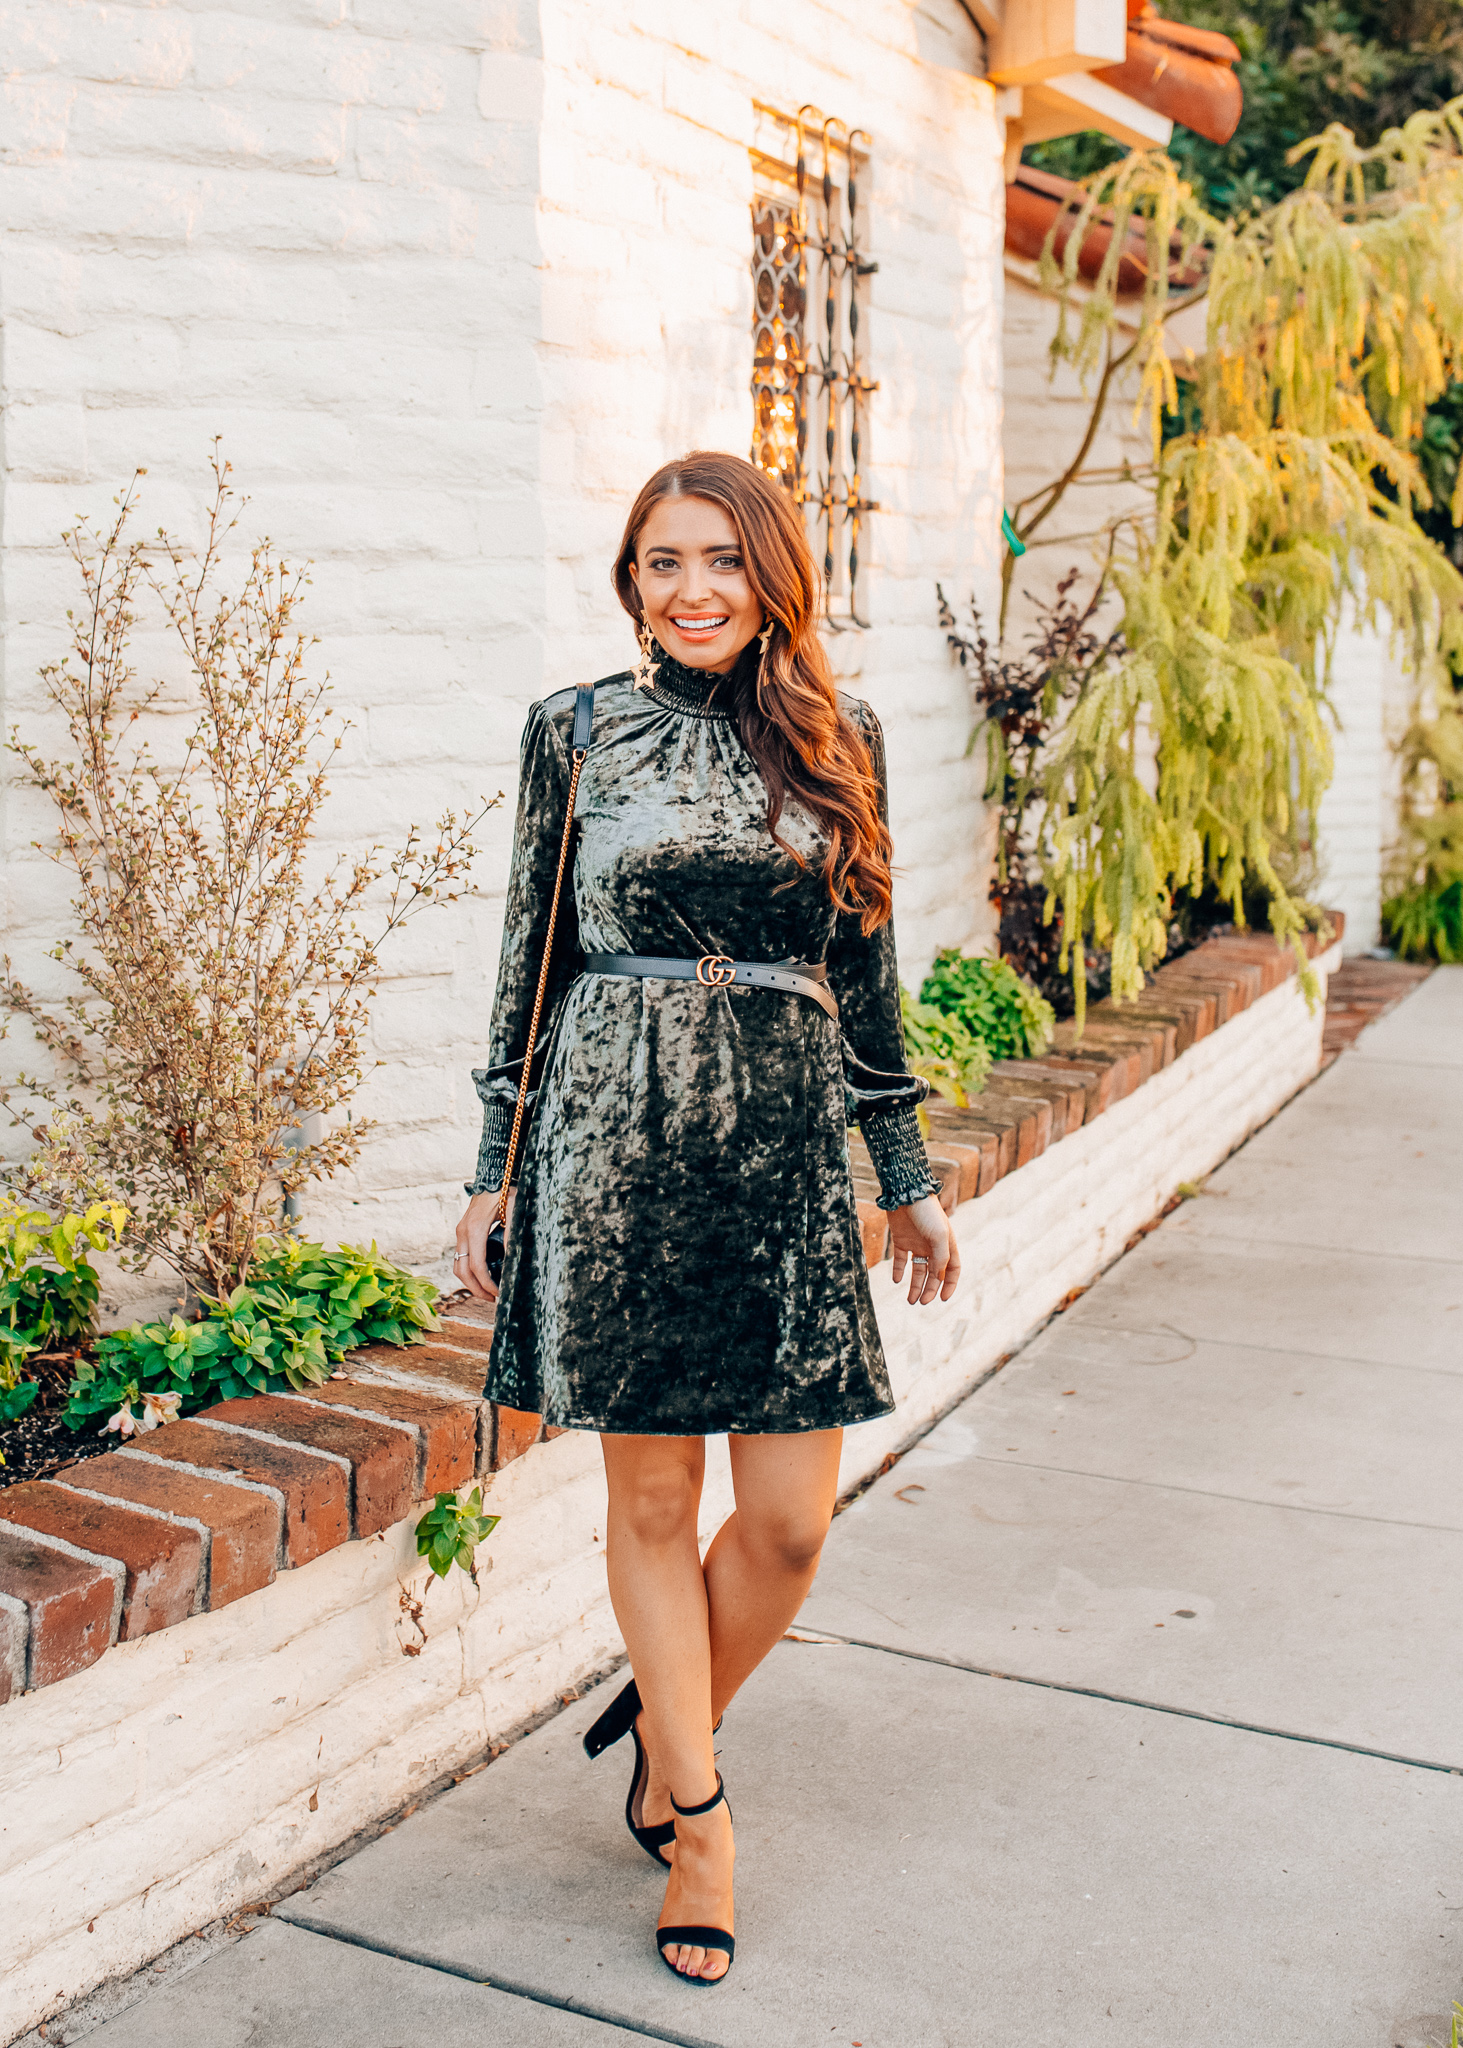 Top Orange County fashion blog, Maxie Elise, features a couple of cute Holiday Dresses